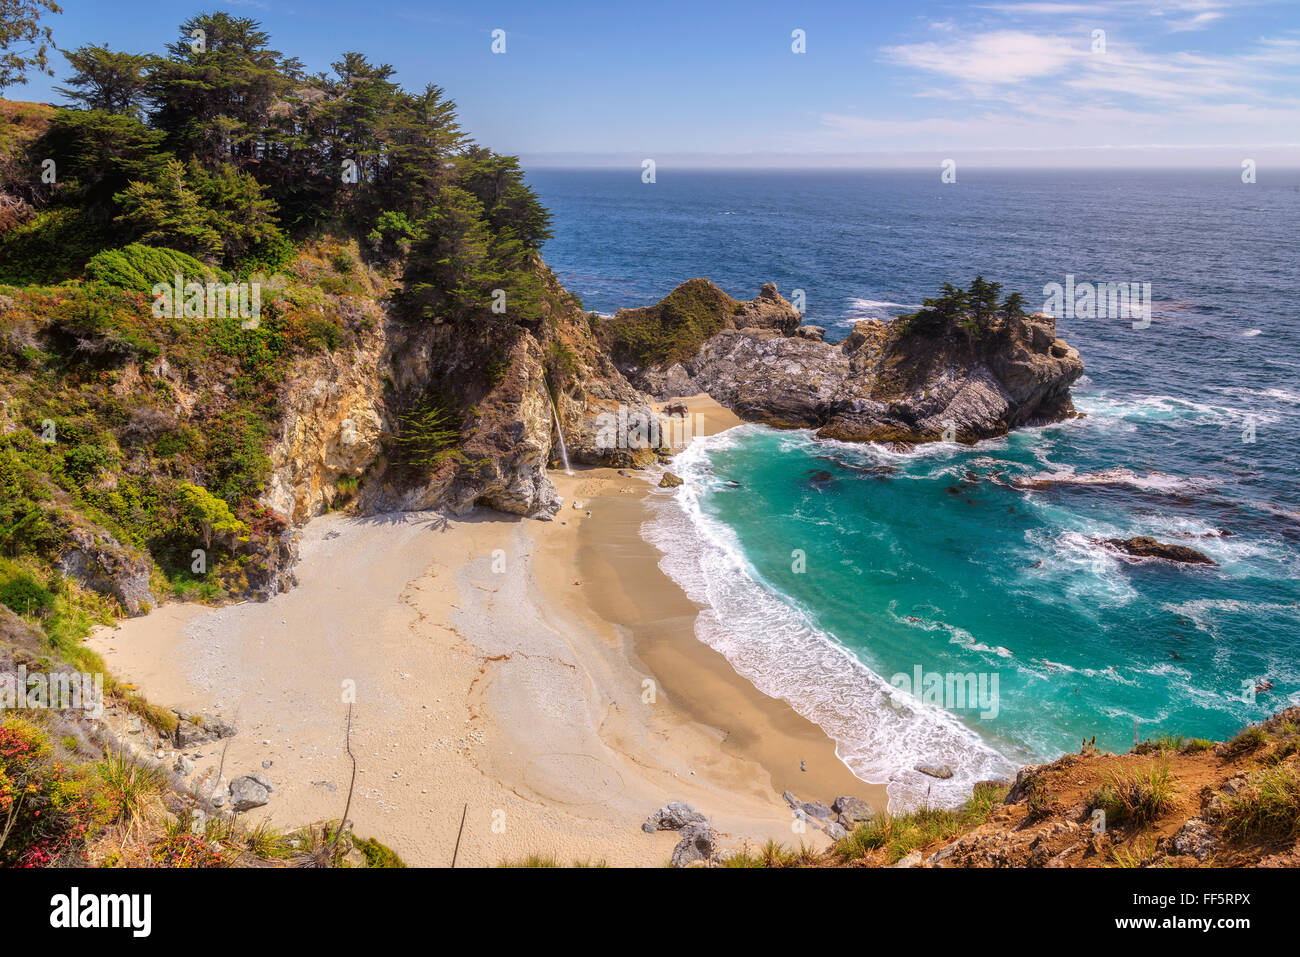 Belle plage sur la côte Pacifique de la Californie Photo Stock